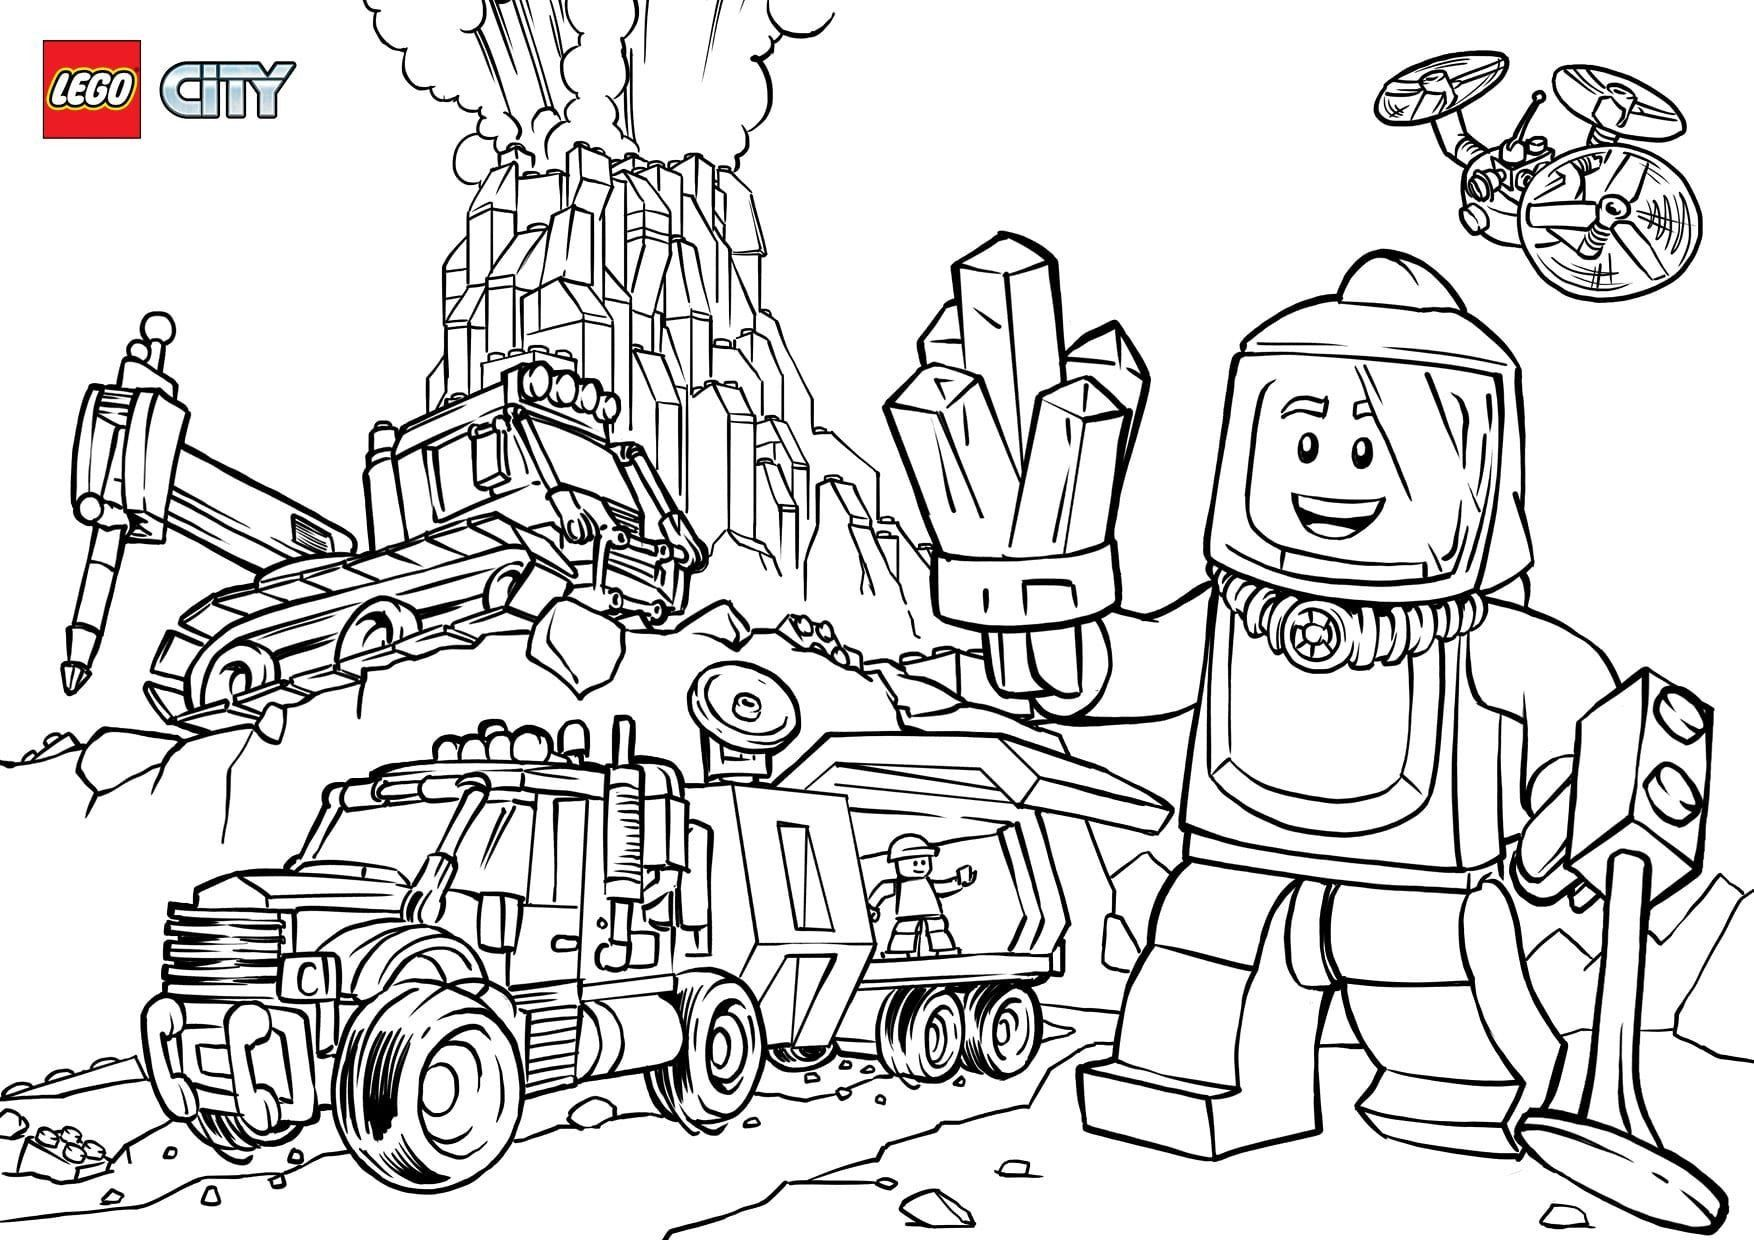 Lego City Coloring Pages Unique Lego Coloring Sheets Lego Coloring Pages Lego Coloring Sheet Lego Movie Coloring Pages